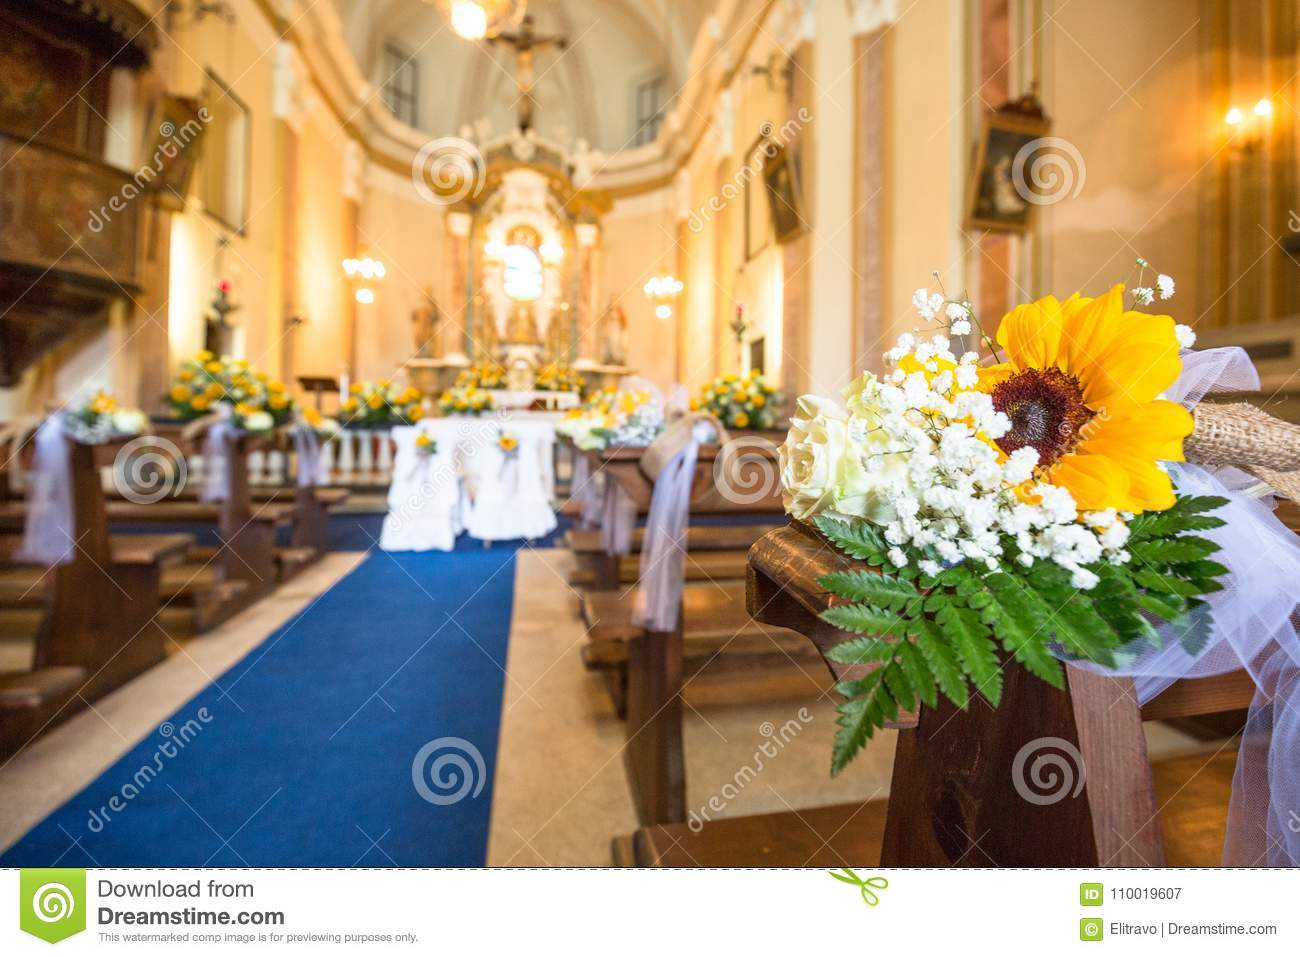 Wedding ceremony in the church stock image image of celebrating beautiful flowers wedding decoration in a church for the marriage junglespirit Choice Image